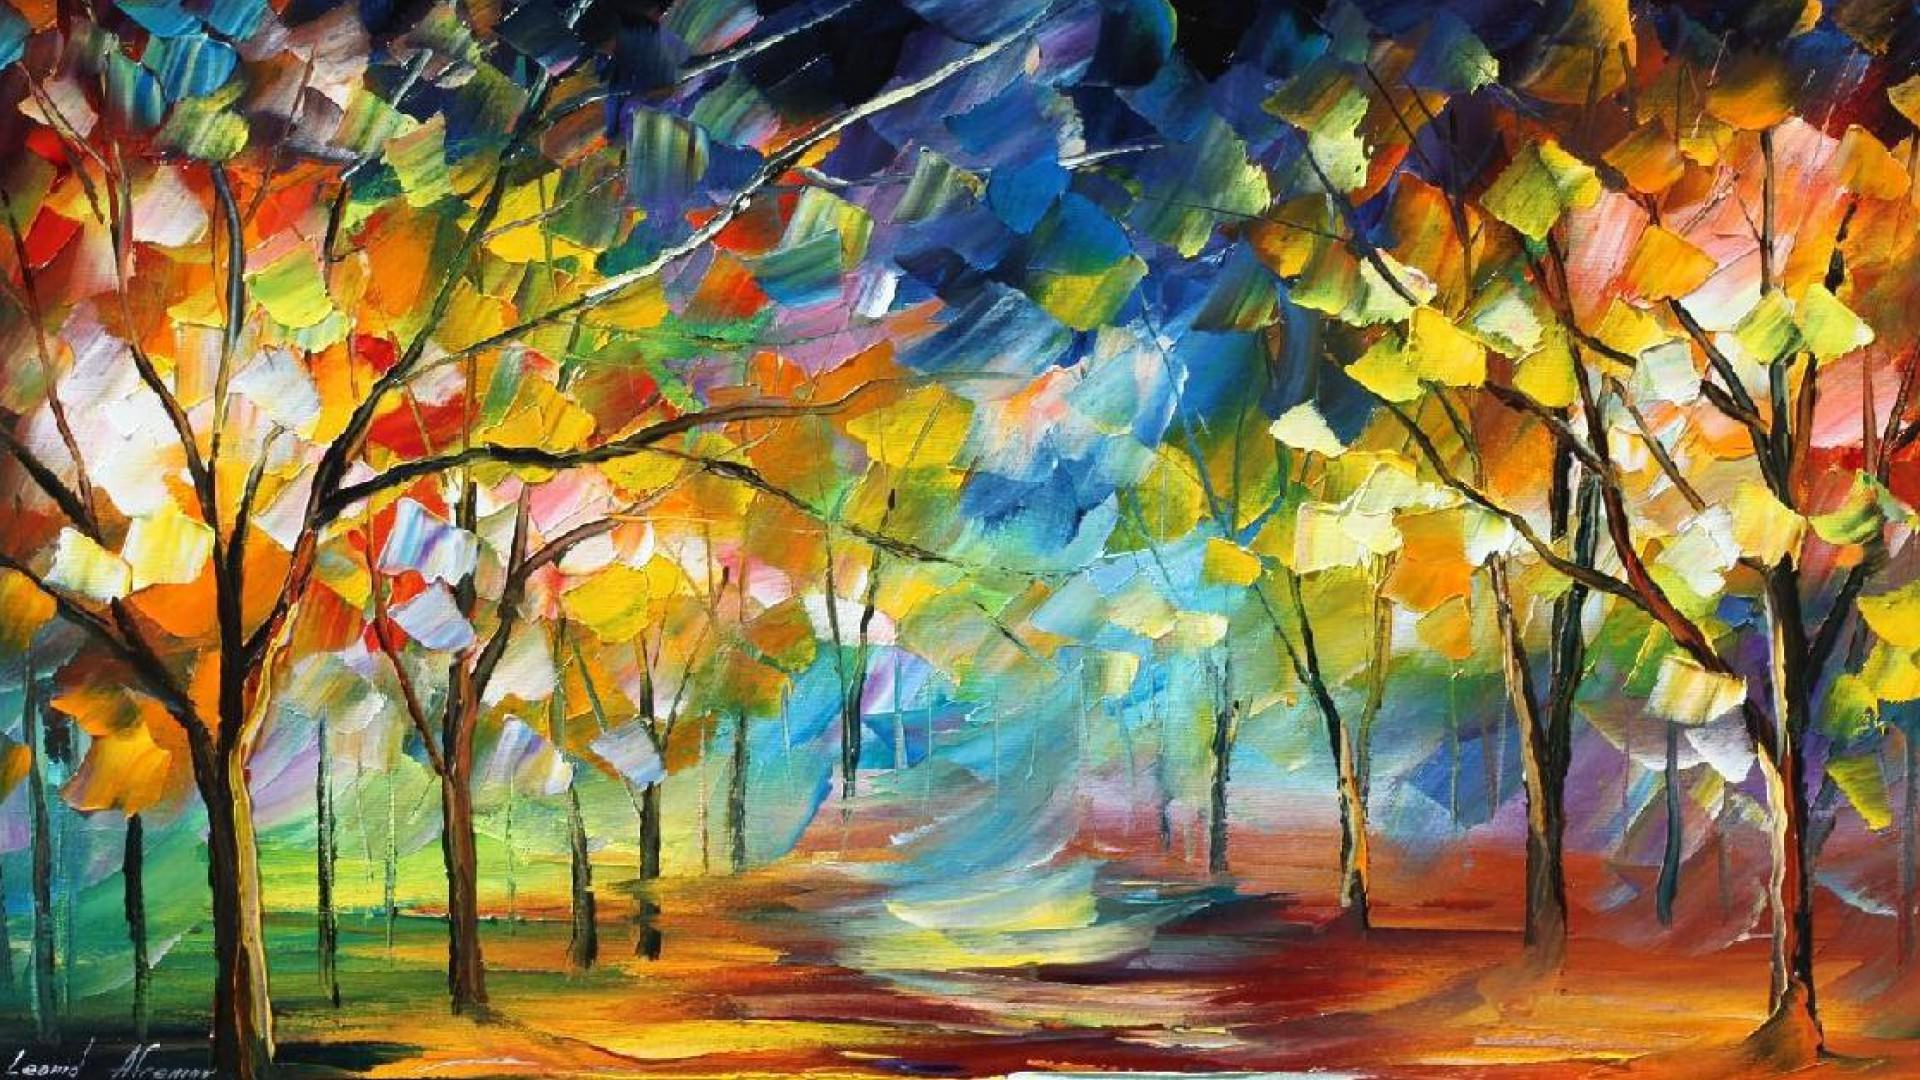 wallpapers hd artistic excellent abstract art hd wallpaper wallpapers 1920x1080